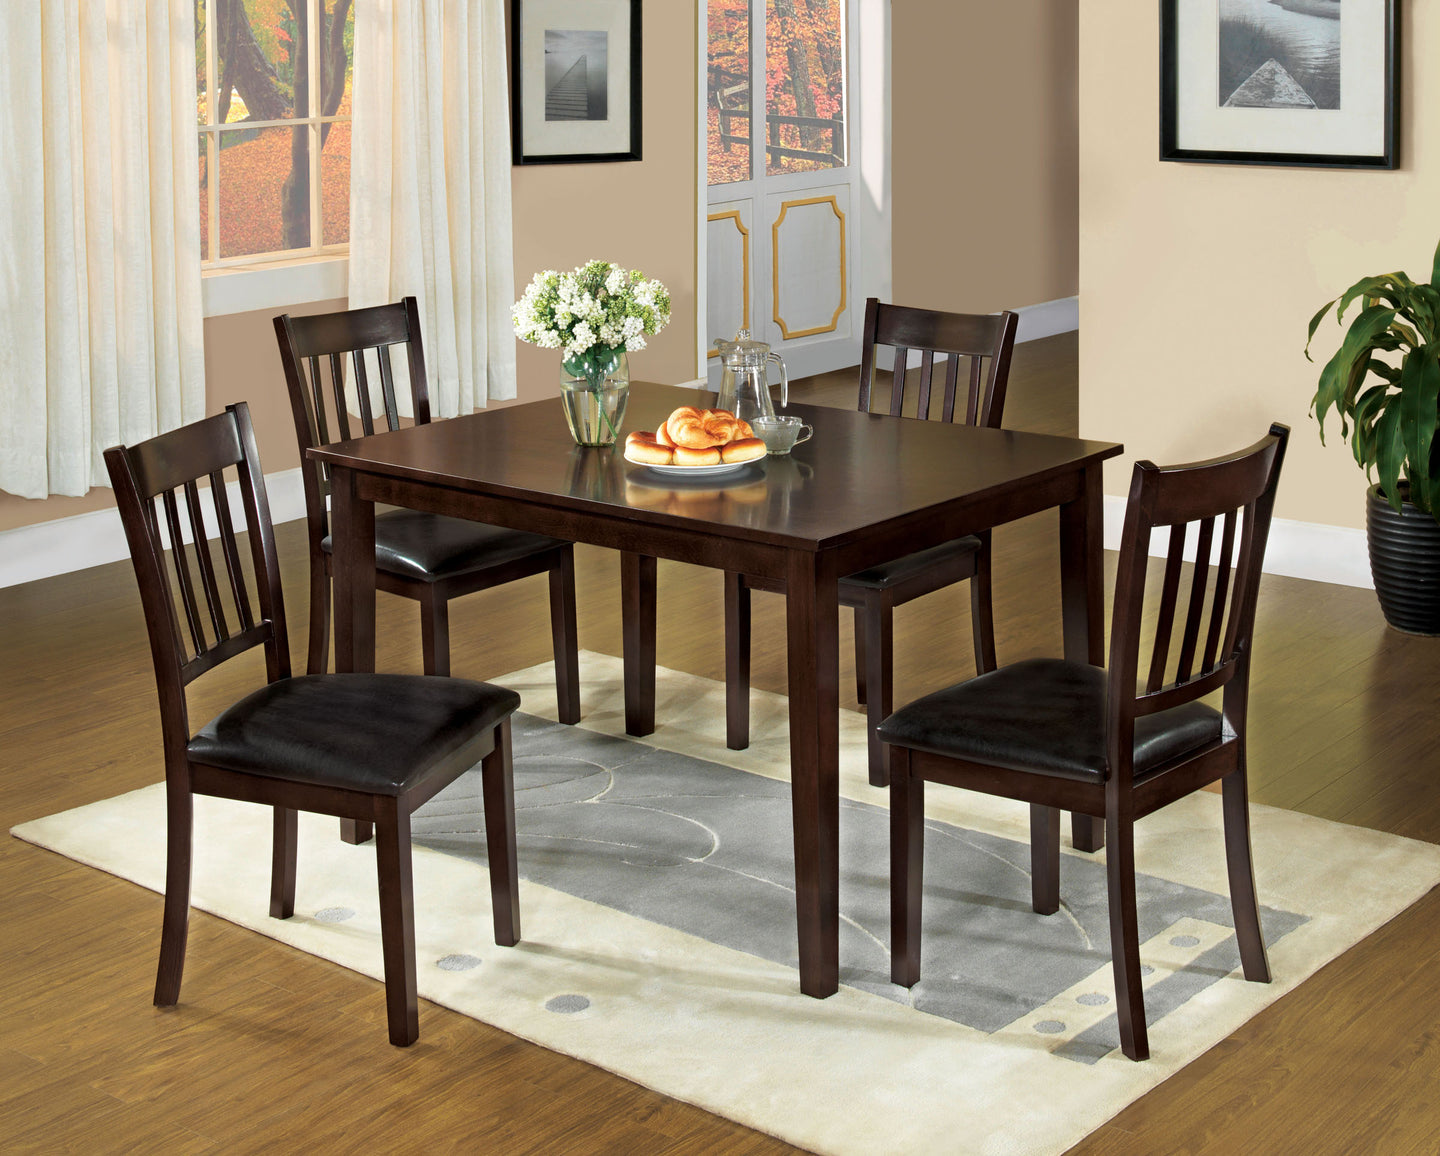 Furniture Of America West Creek I Espresso Wood Finish 5 Piece Dining Table Set